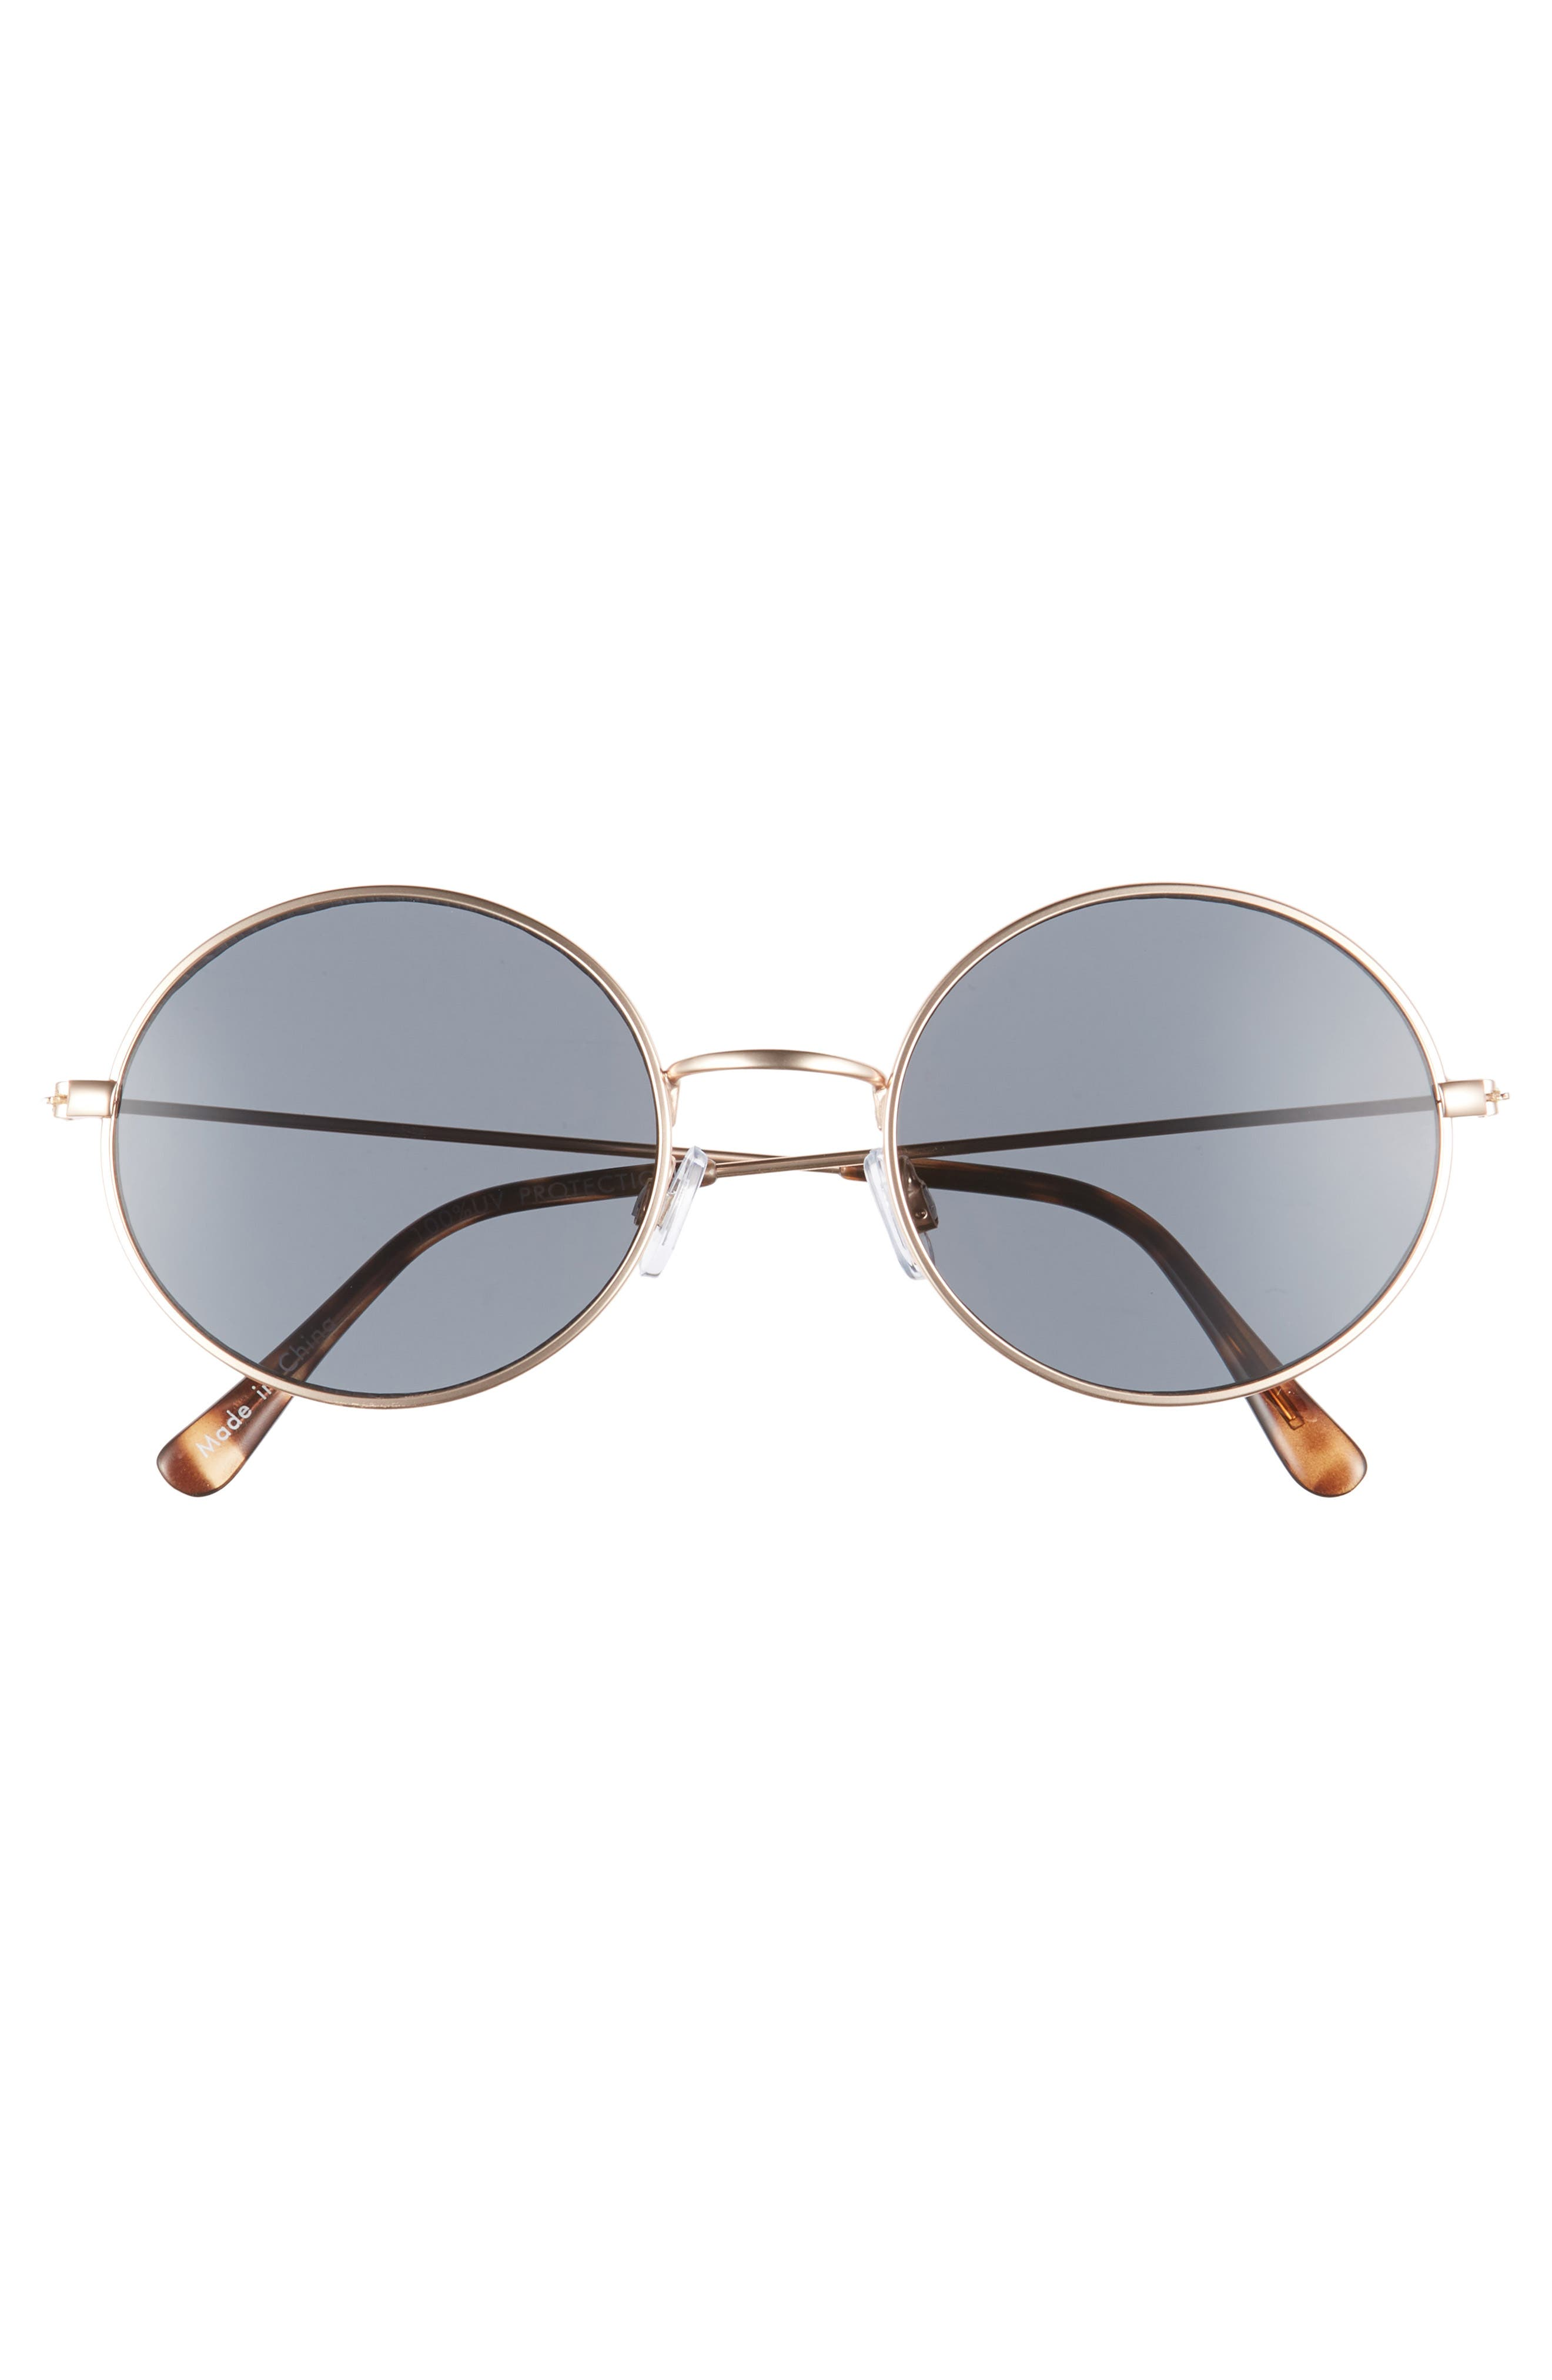 53mm Flat Round Sunglasses,                             Alternate thumbnail 3, color,                             GOLD/ BLACK